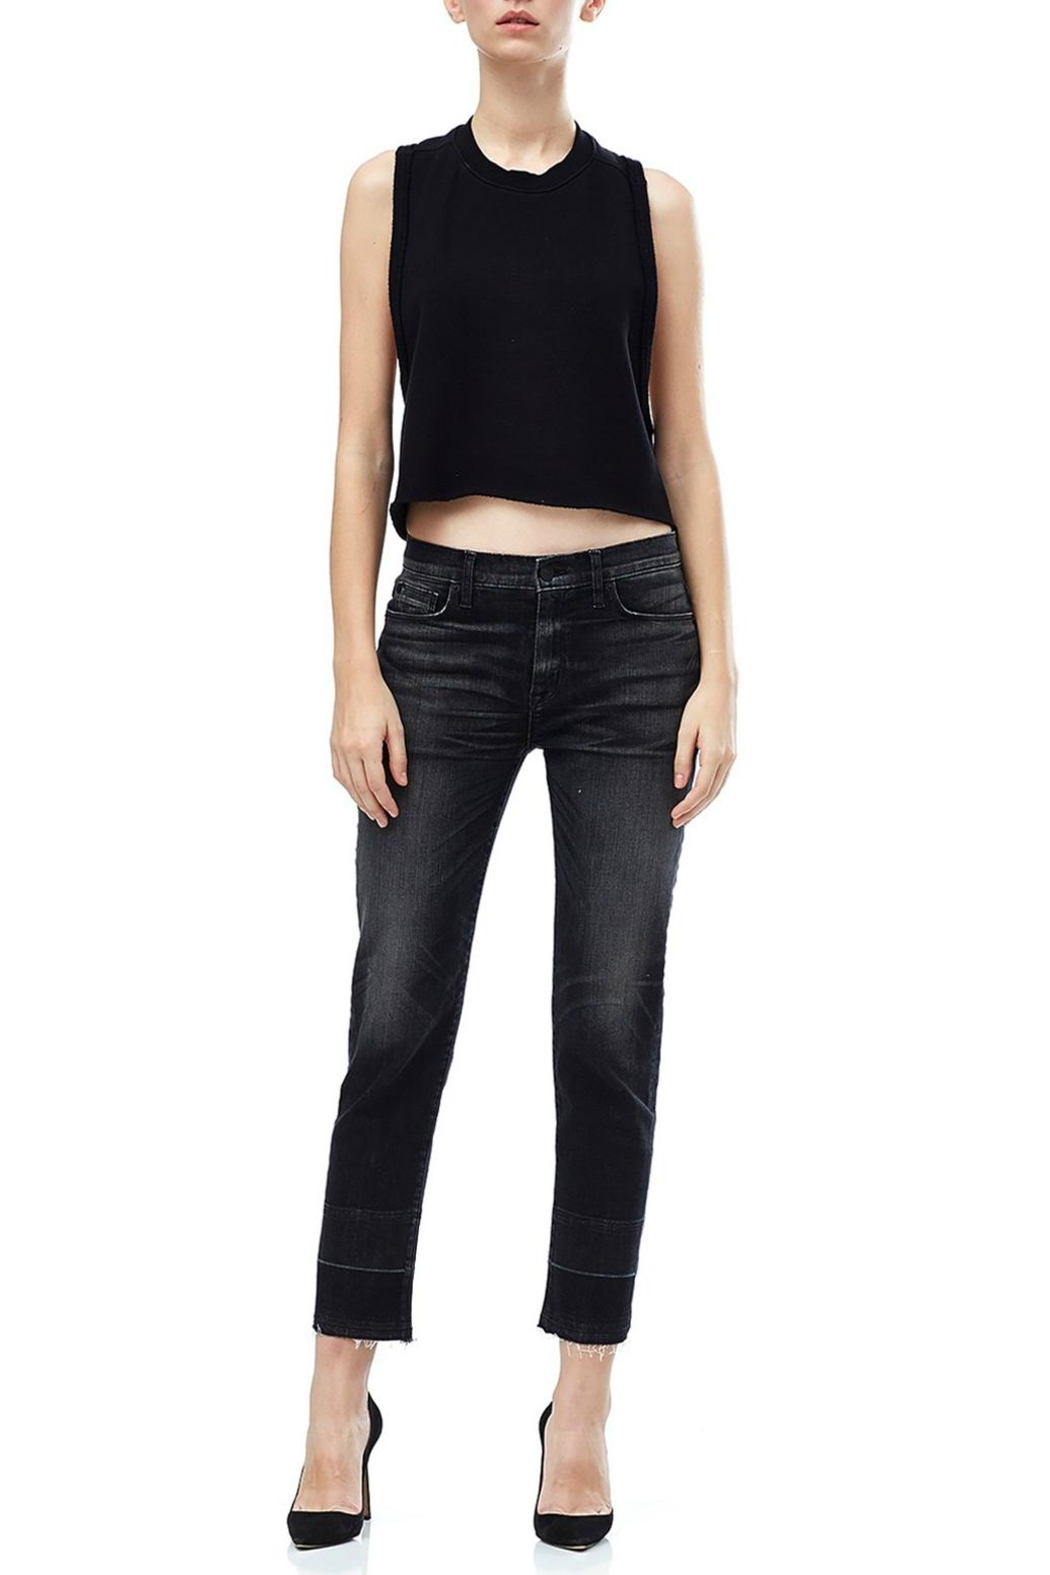 Hudson Jeans Grey Ankle Straight Jeans - Main Image